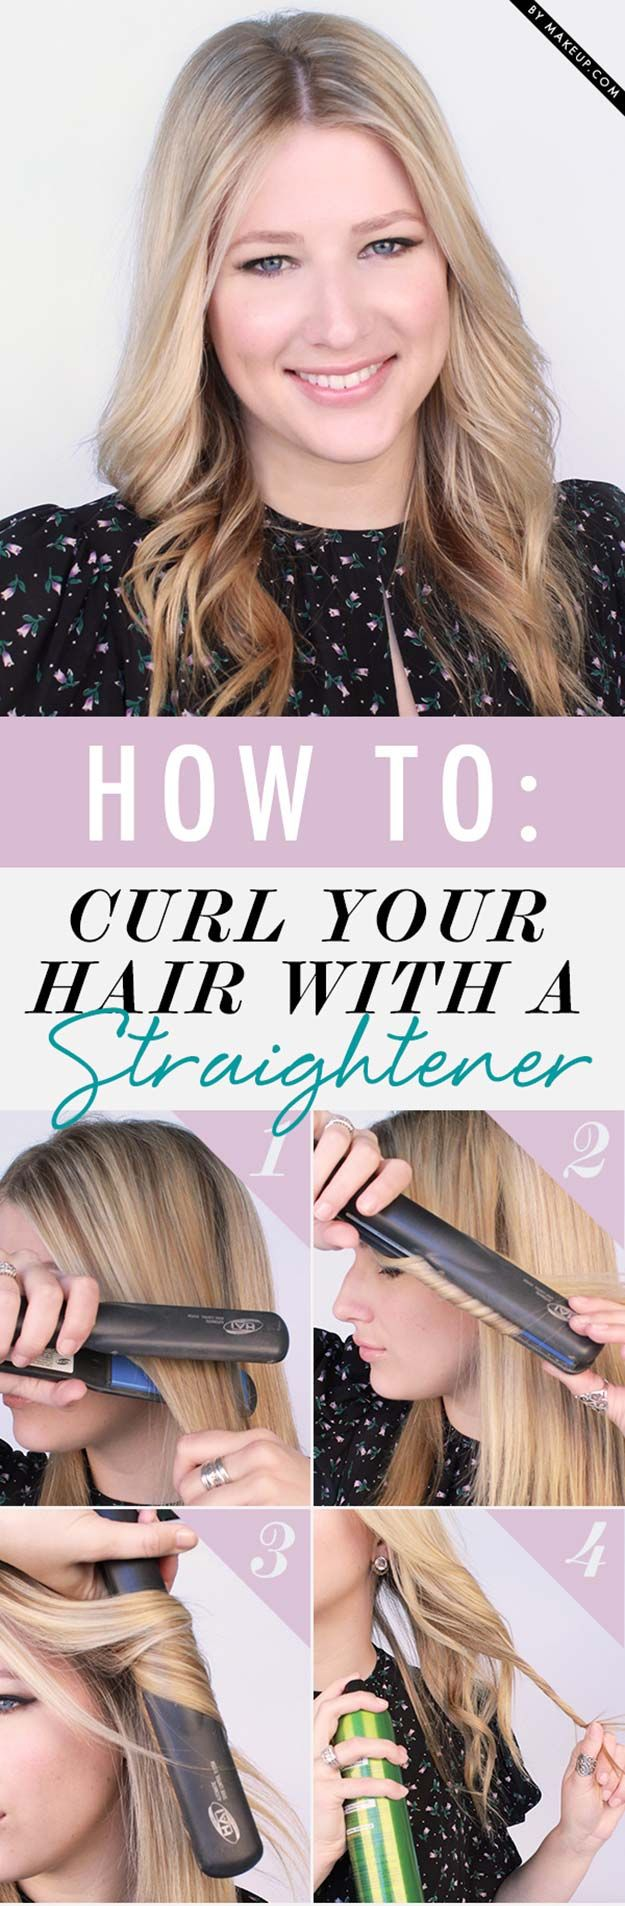 Cool Hairstyles You Can Do With Your Flat Iron - How To Curl Your Hair with a St...